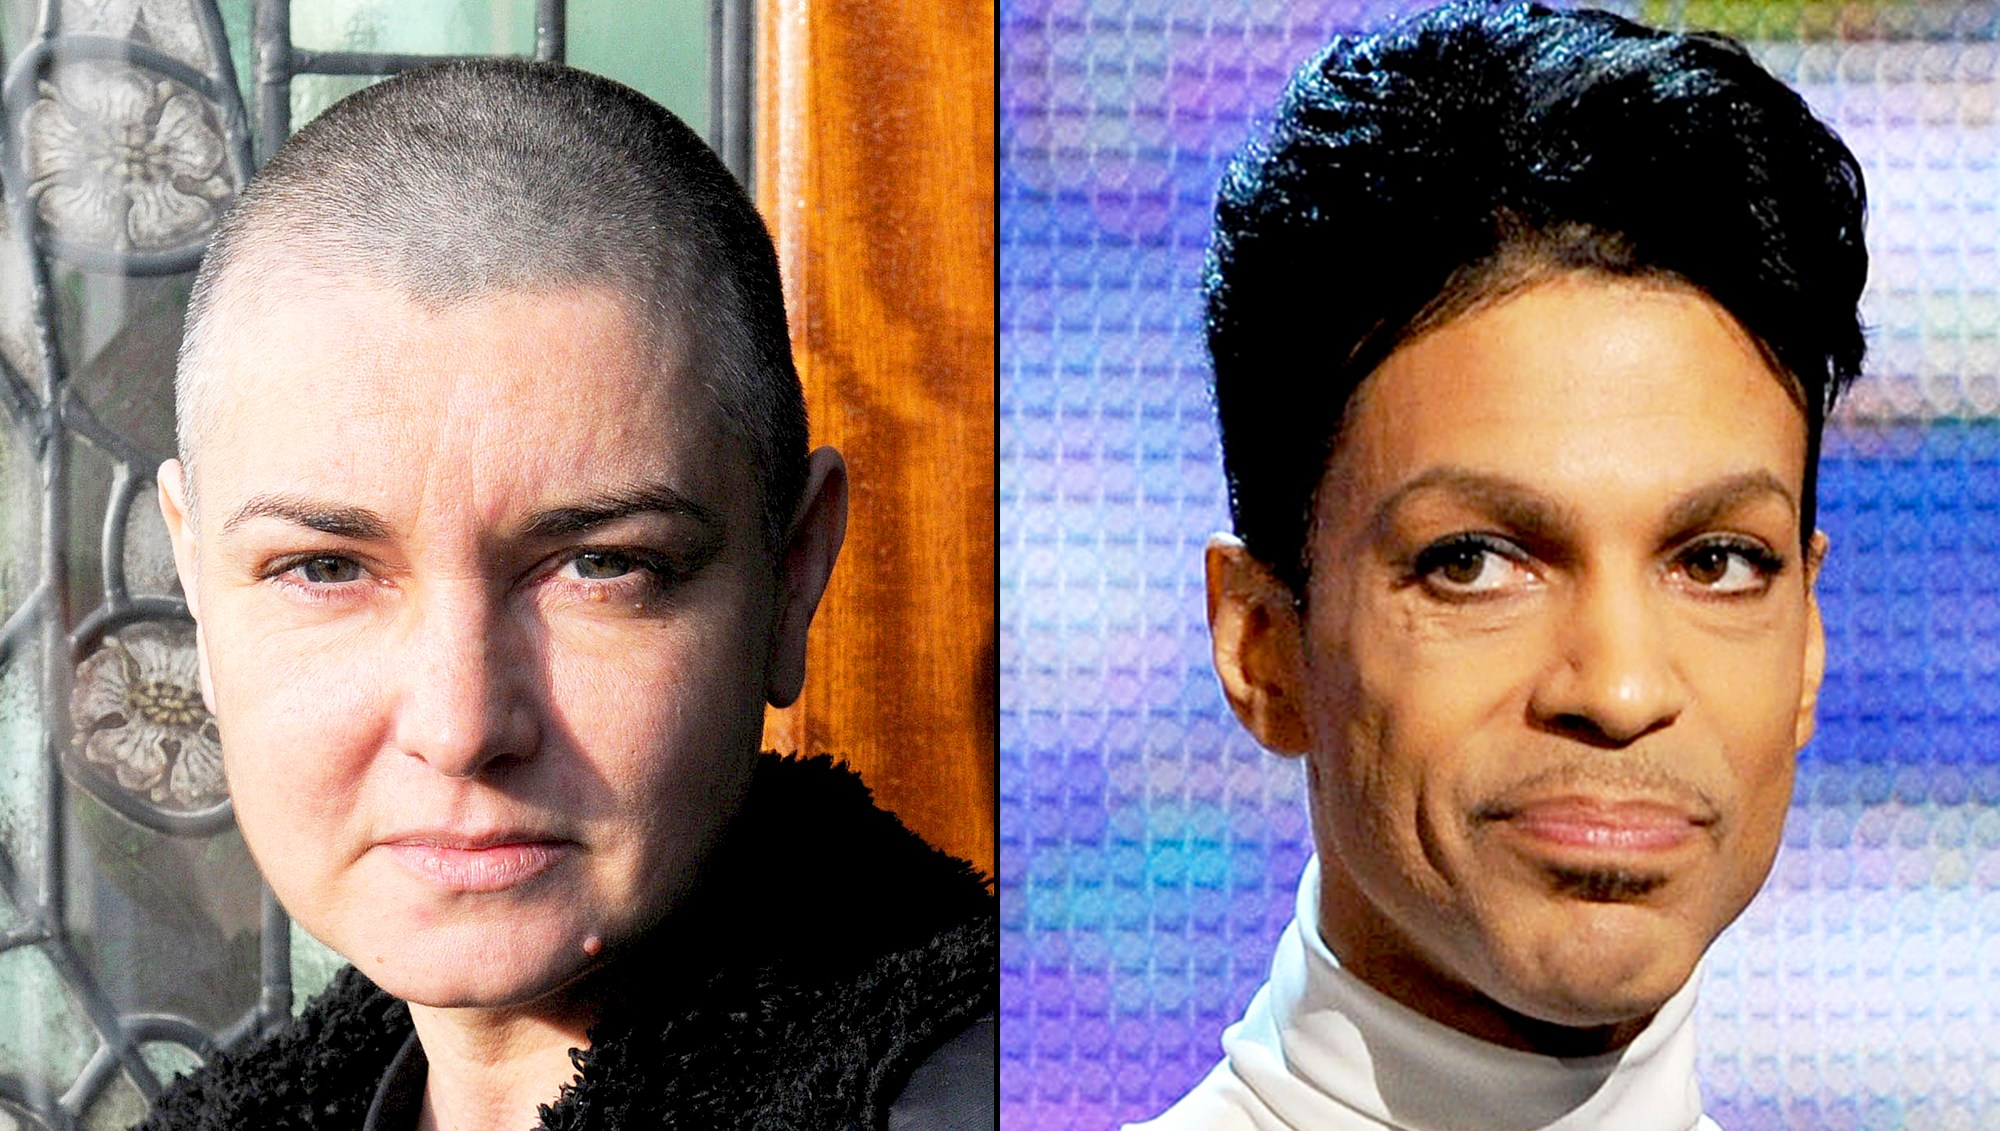 Sinead O'Connor and Prince